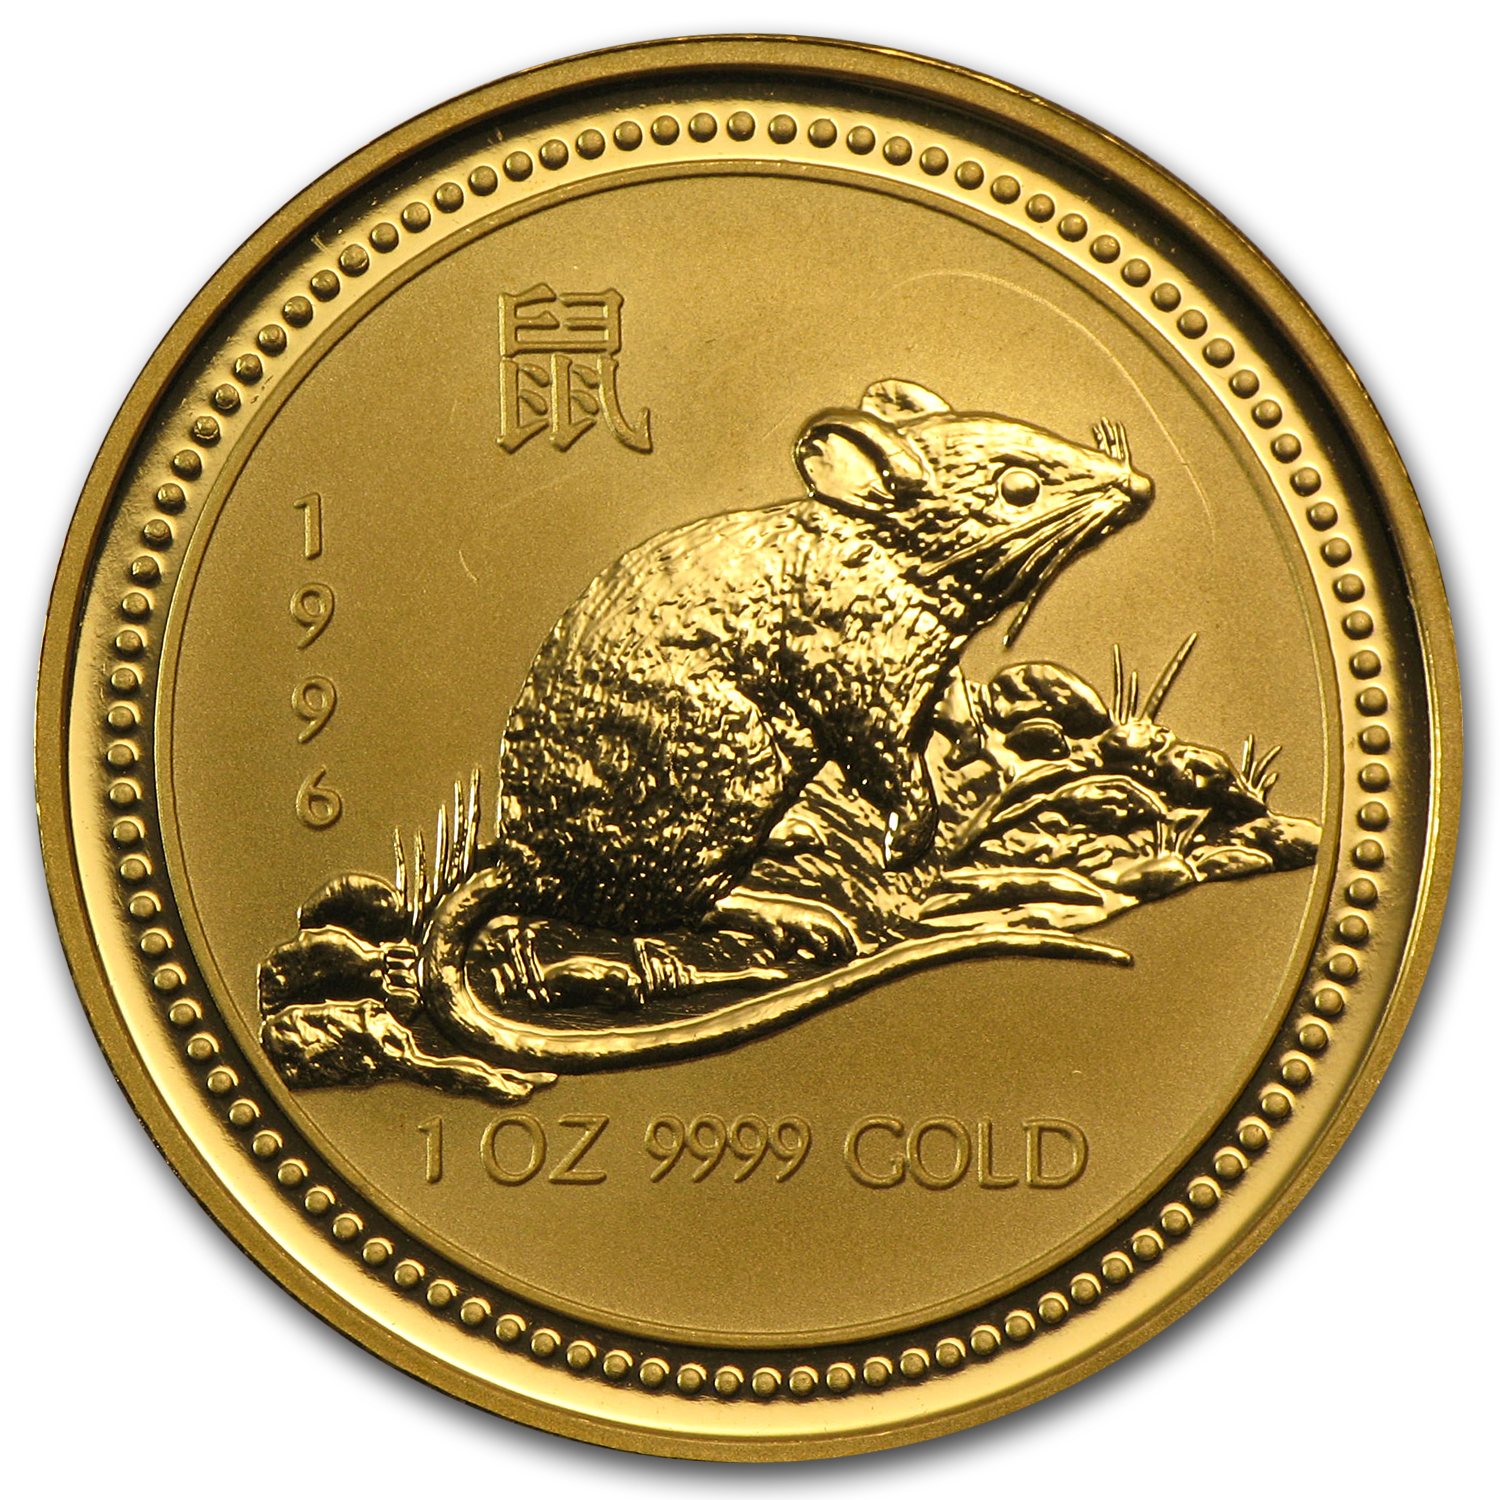 1996 Australia 1 oz Gold Lunar Rat (SI, Light Abrasions)